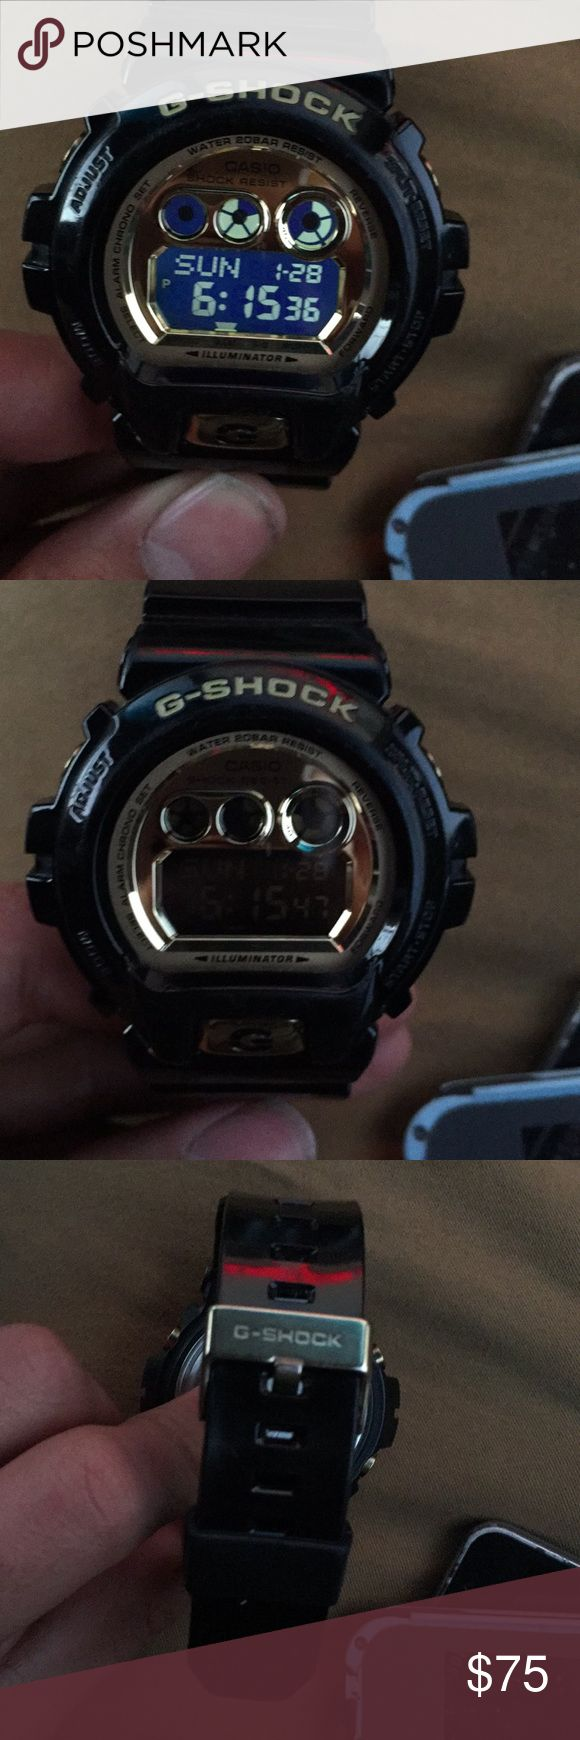 G-shock It's in good condition just don't need it anymore G-Shock Accessories Watches